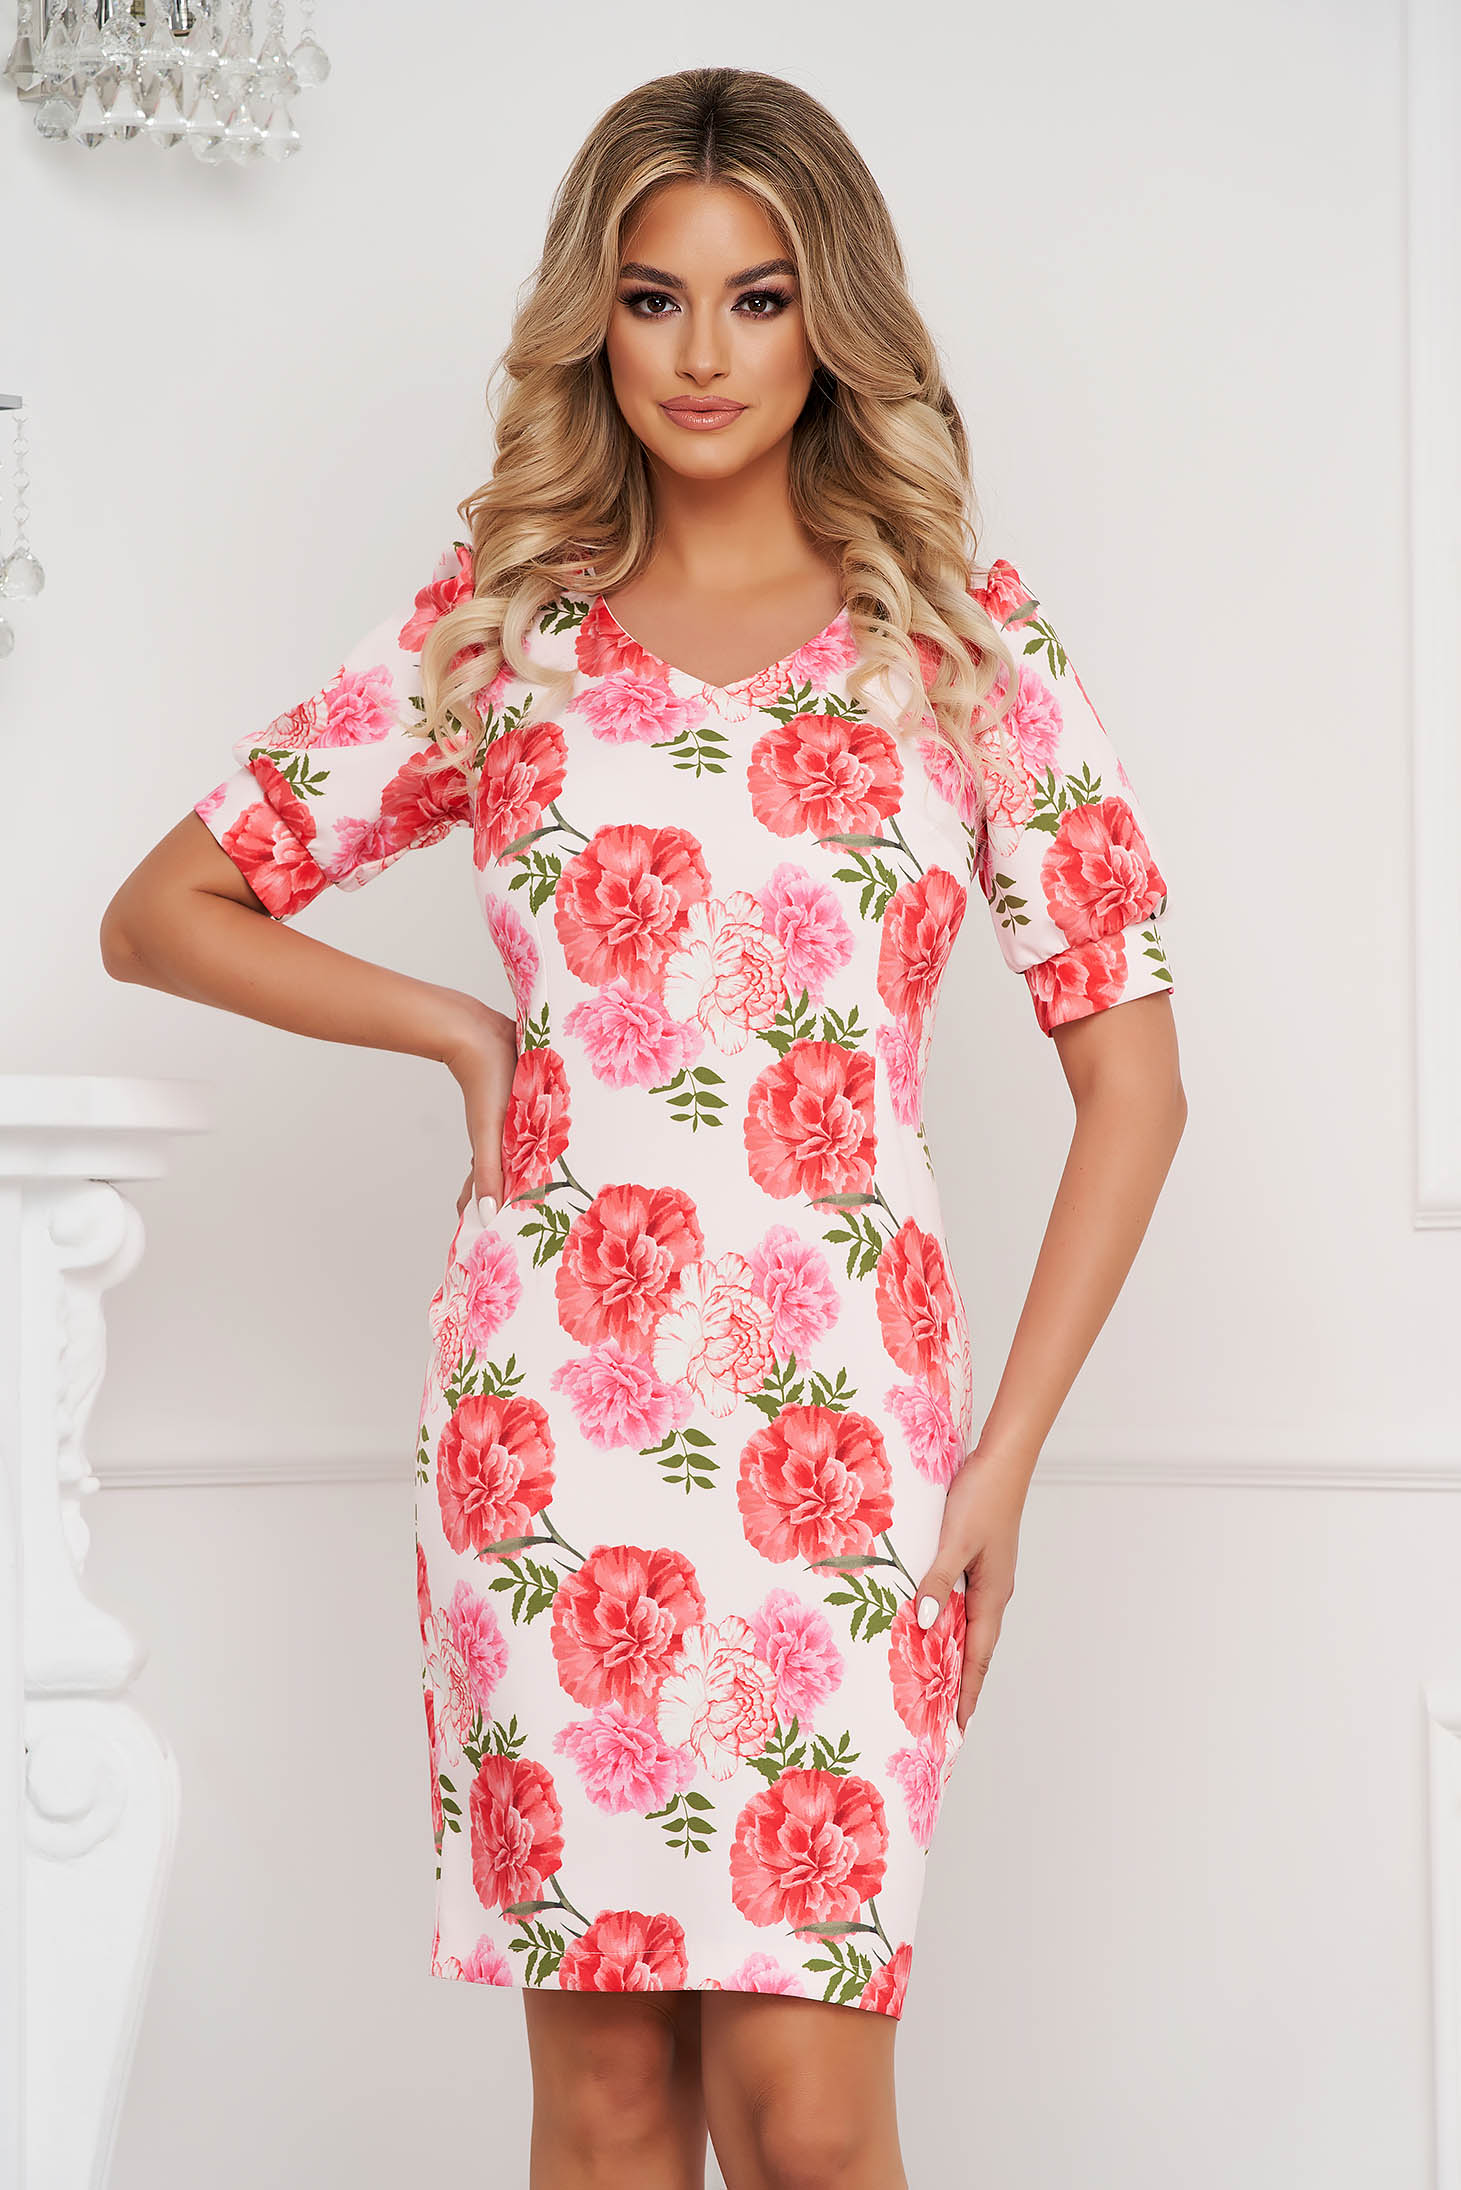 StarShinerS dress short cut pencil short sleeves with floral print